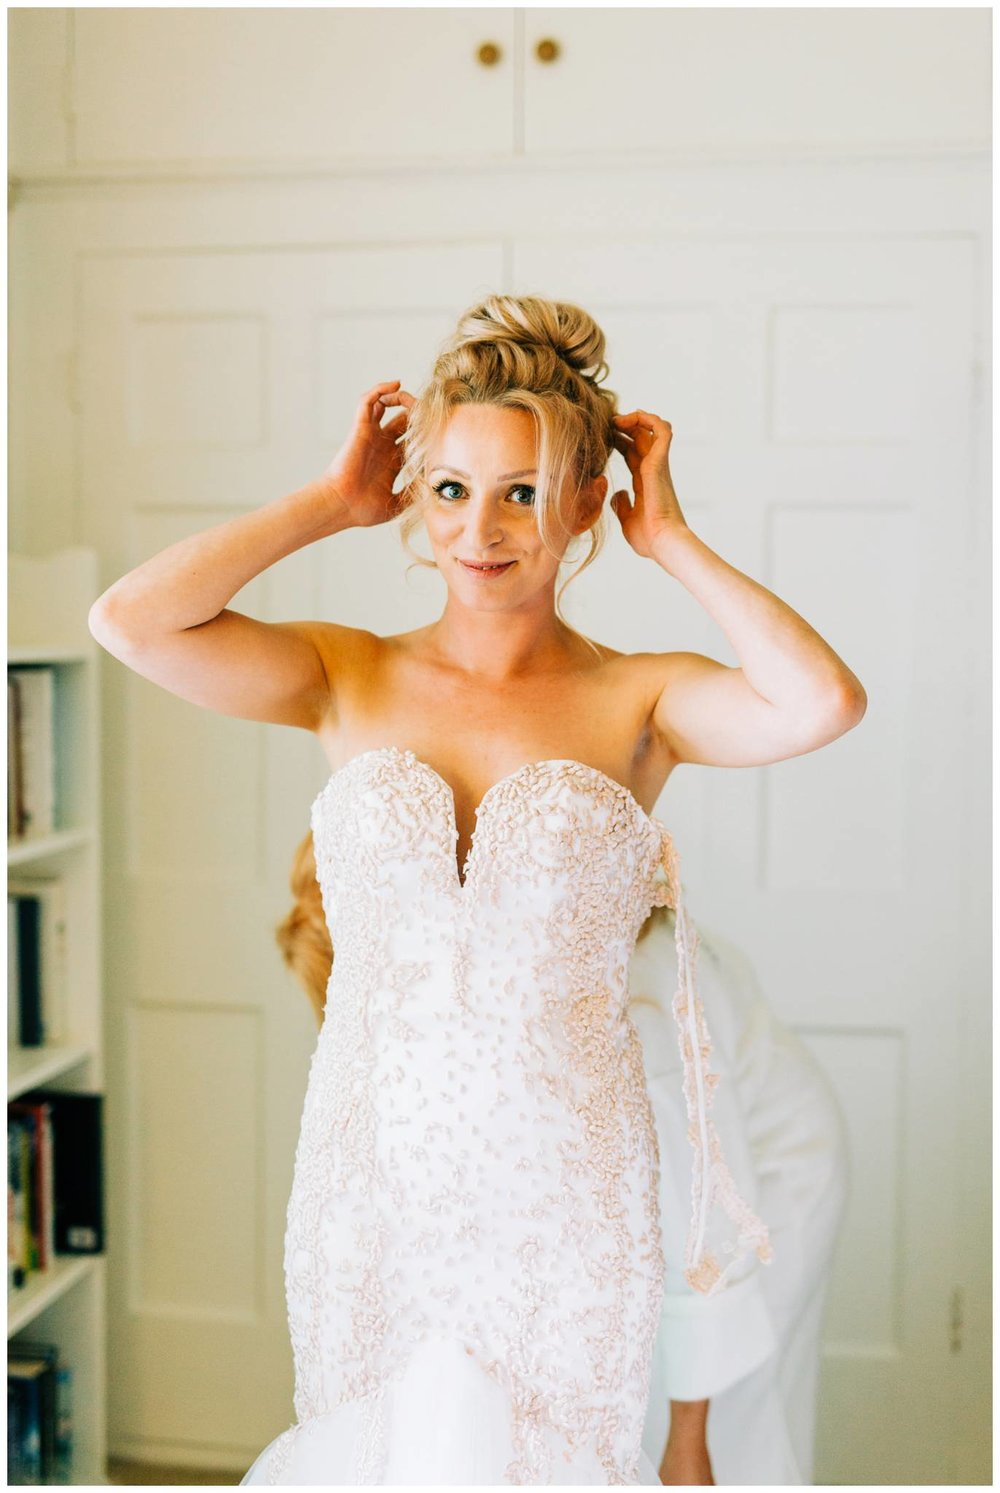 Natural wedding photography Manchester - Clare Robinson Photography_0238.jpg